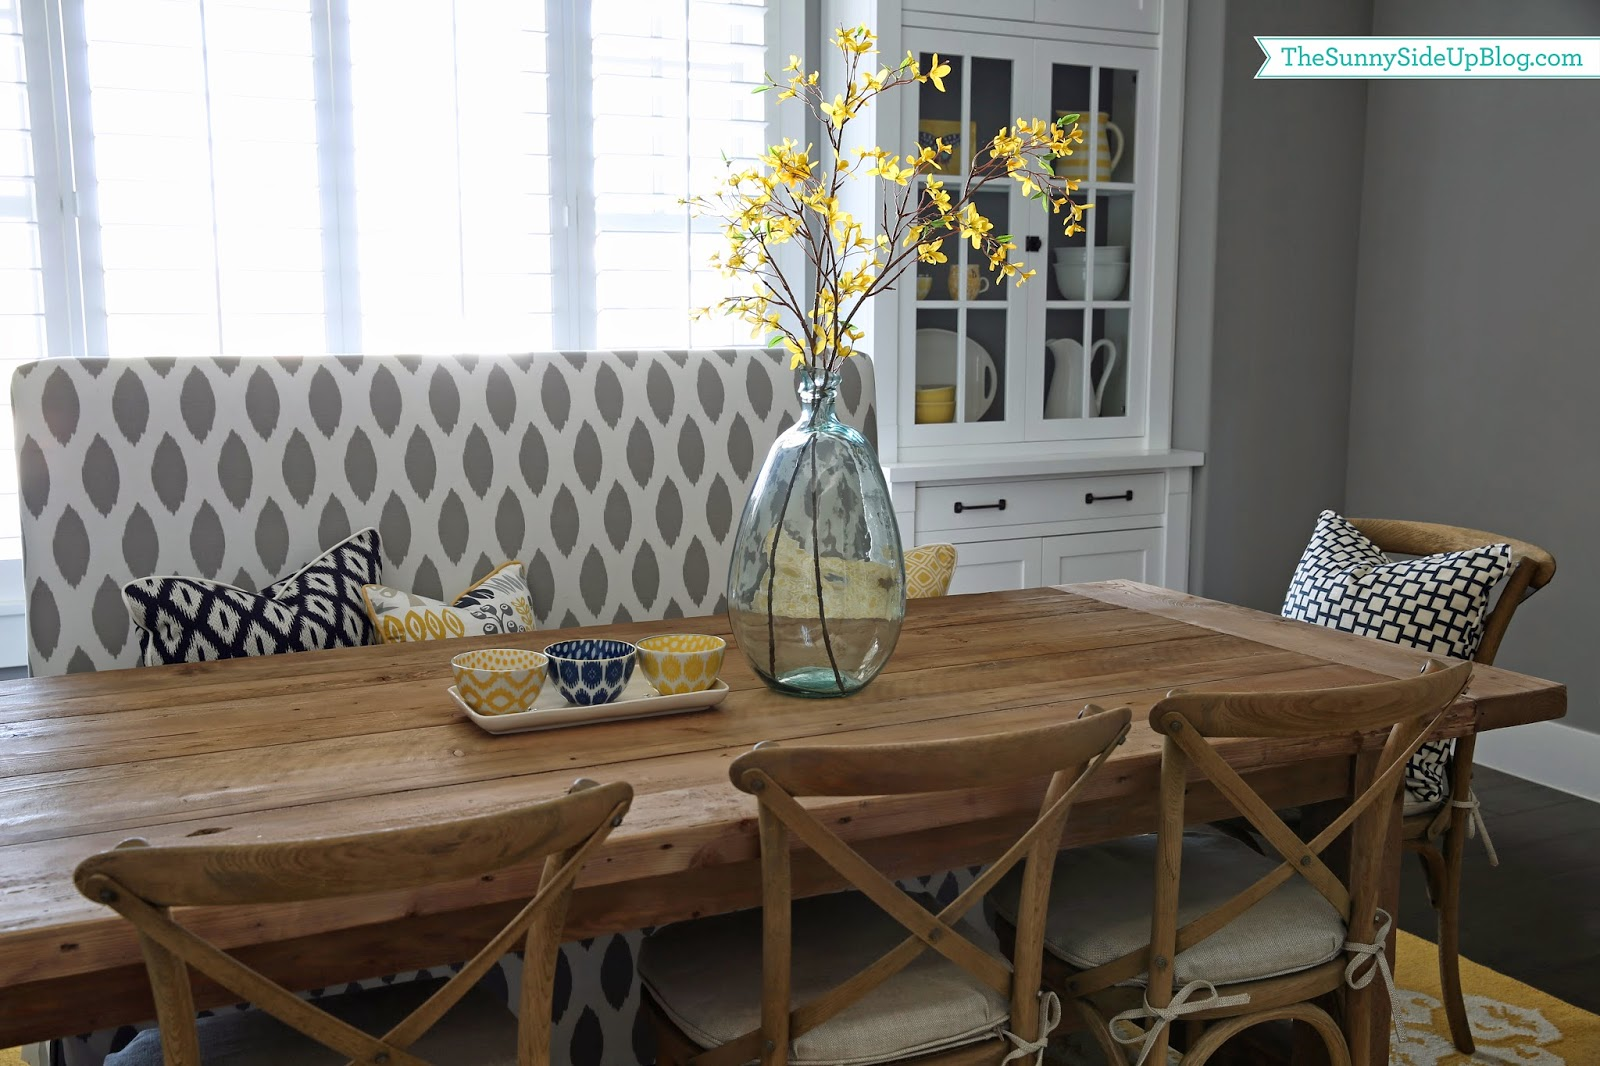 Dining Table Decor Diningroom:Decorating The Best Dining Table ...